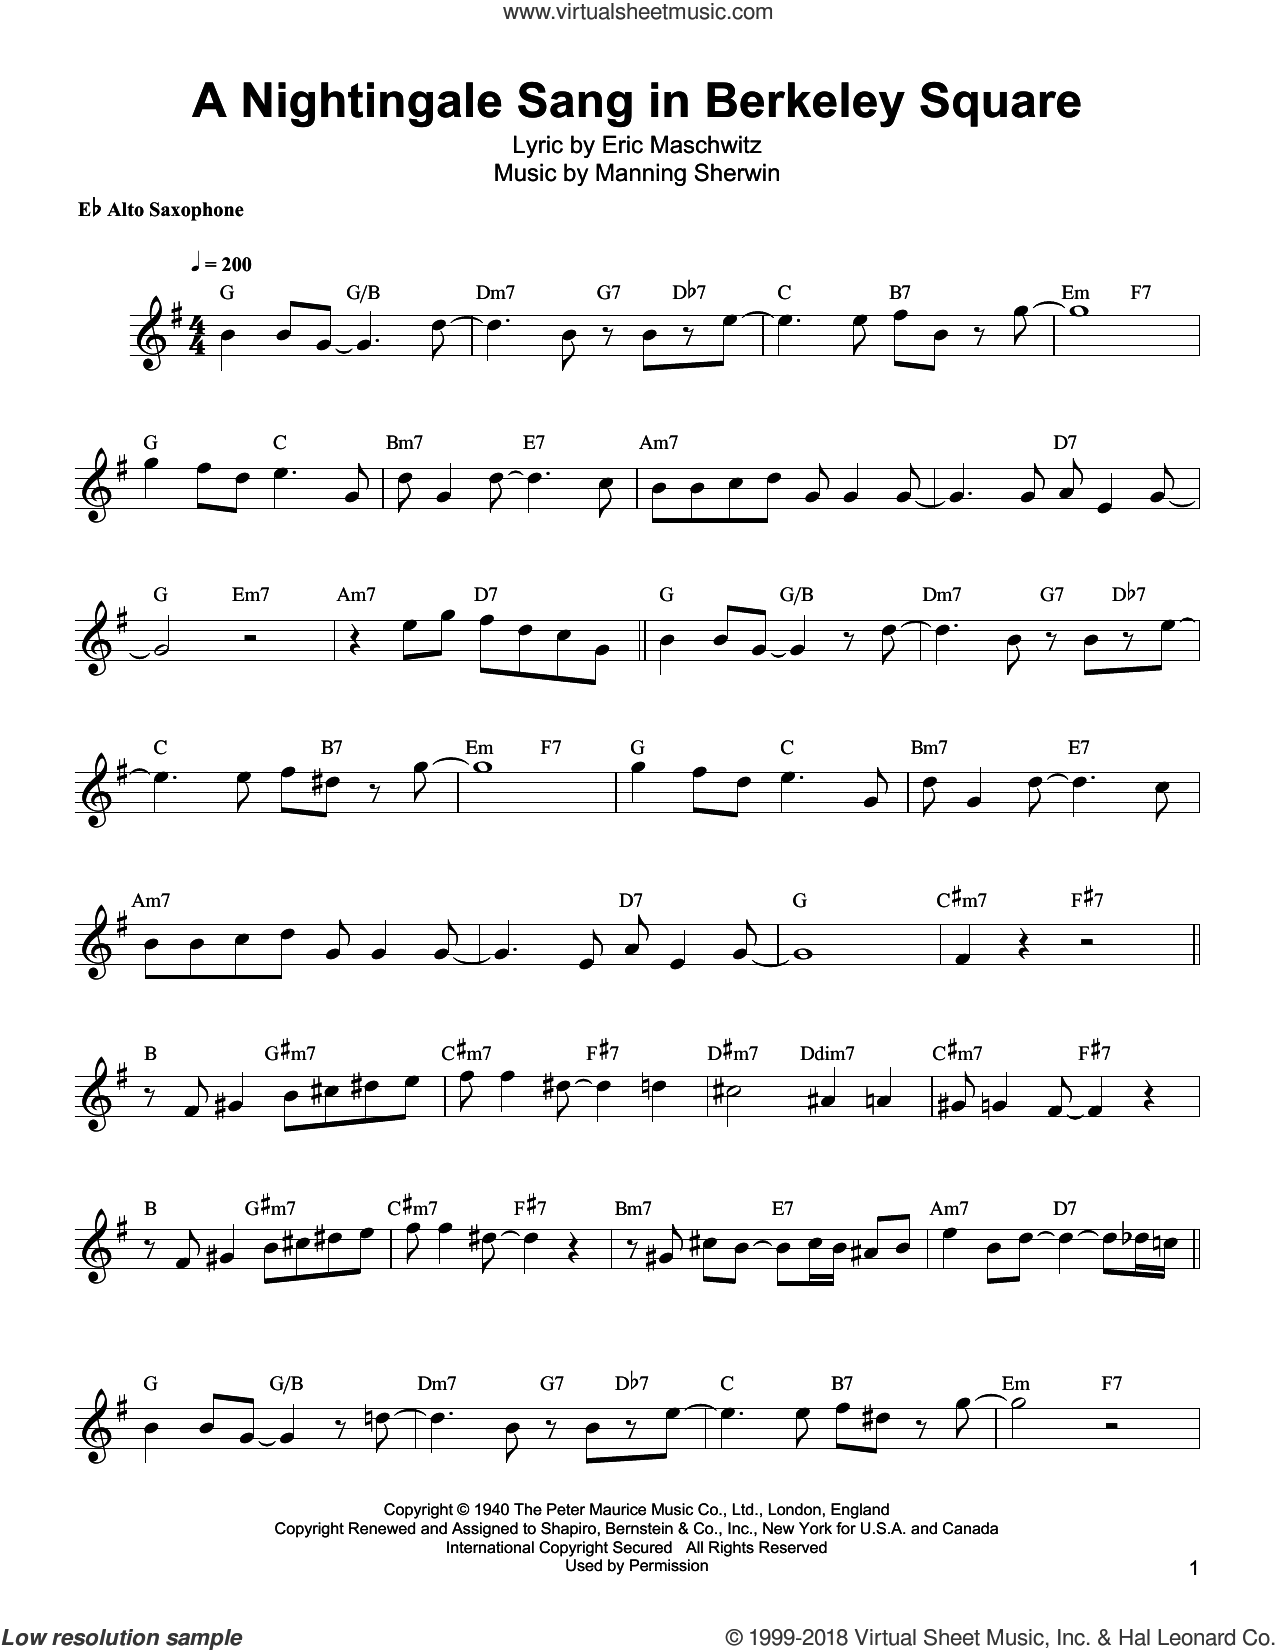 A Nightingale Sang In Berkeley Square sheet music for alto saxophone (transcription) by Bud Shank, Eric Maschwitz and Manning Sherwin, intermediate skill level